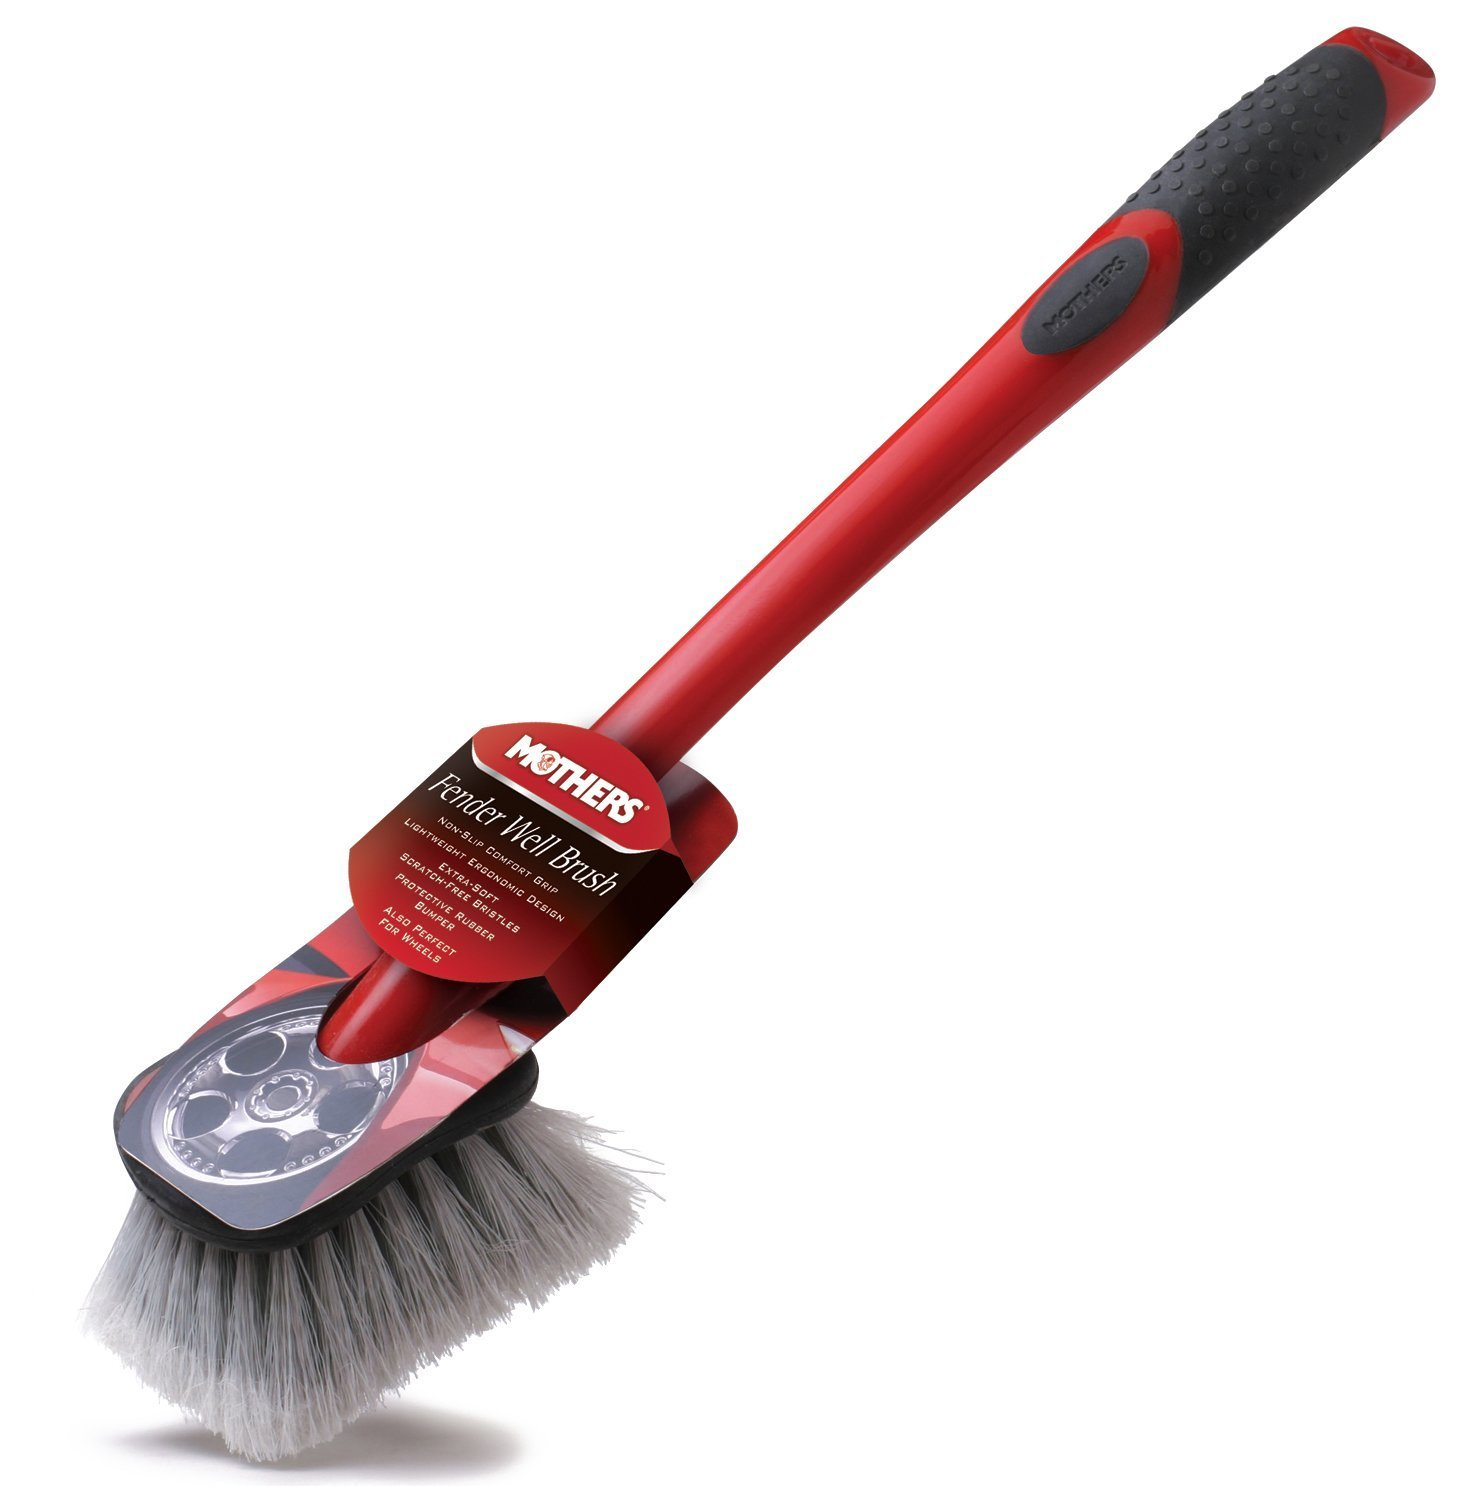 Mothers 155800 Long Handled Brush